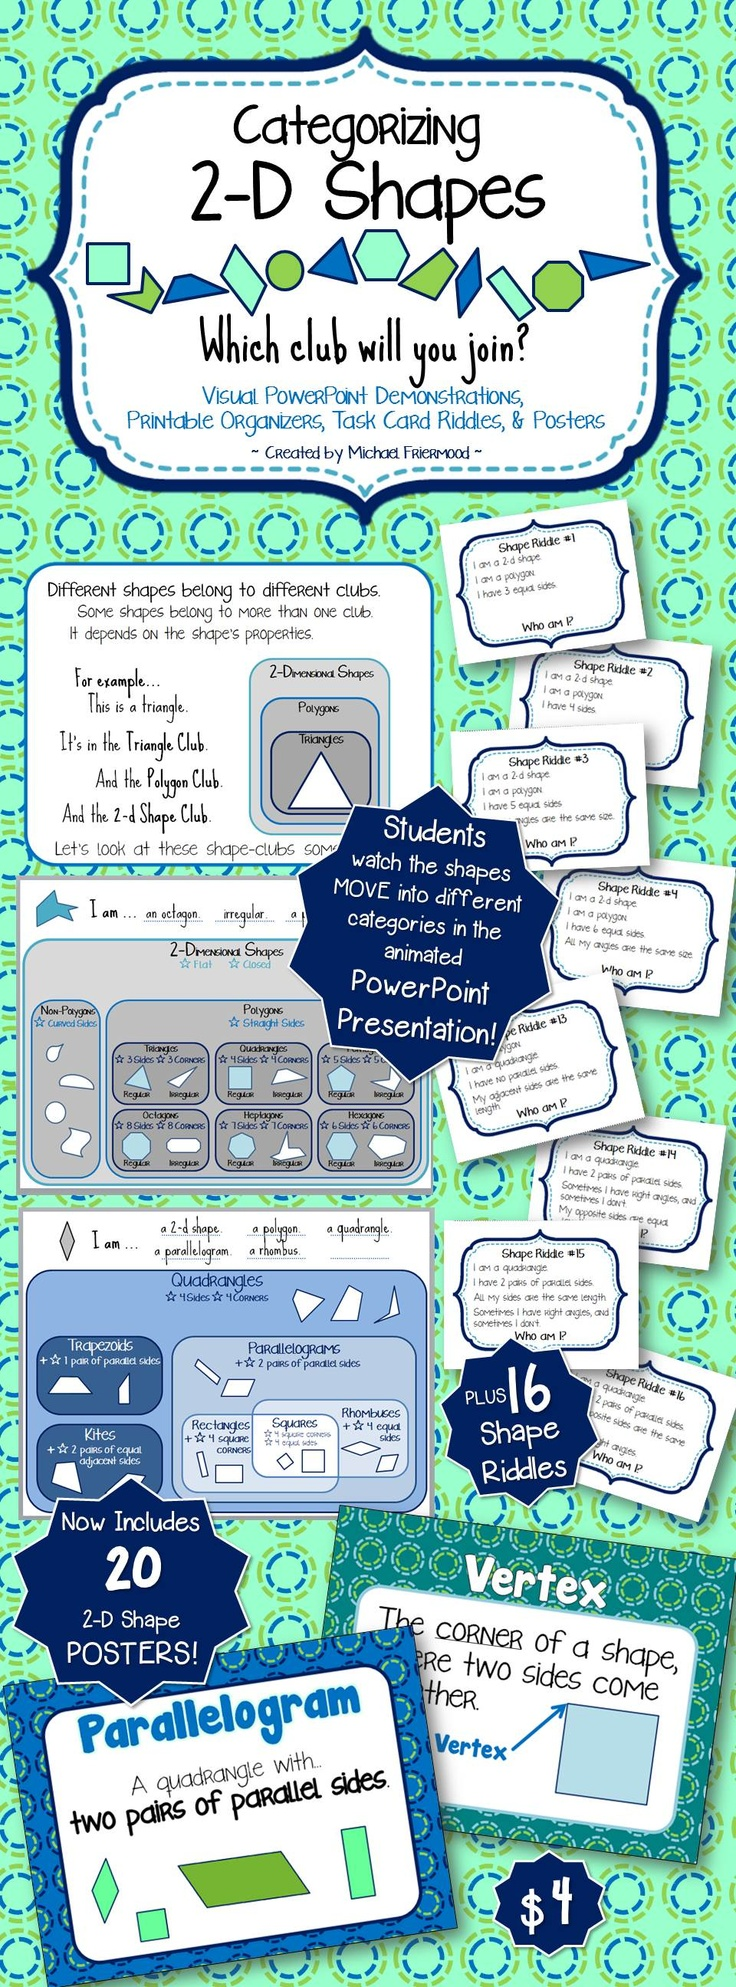 88 best Maths - géométrie images on Pinterest | Teaching math, Area ...